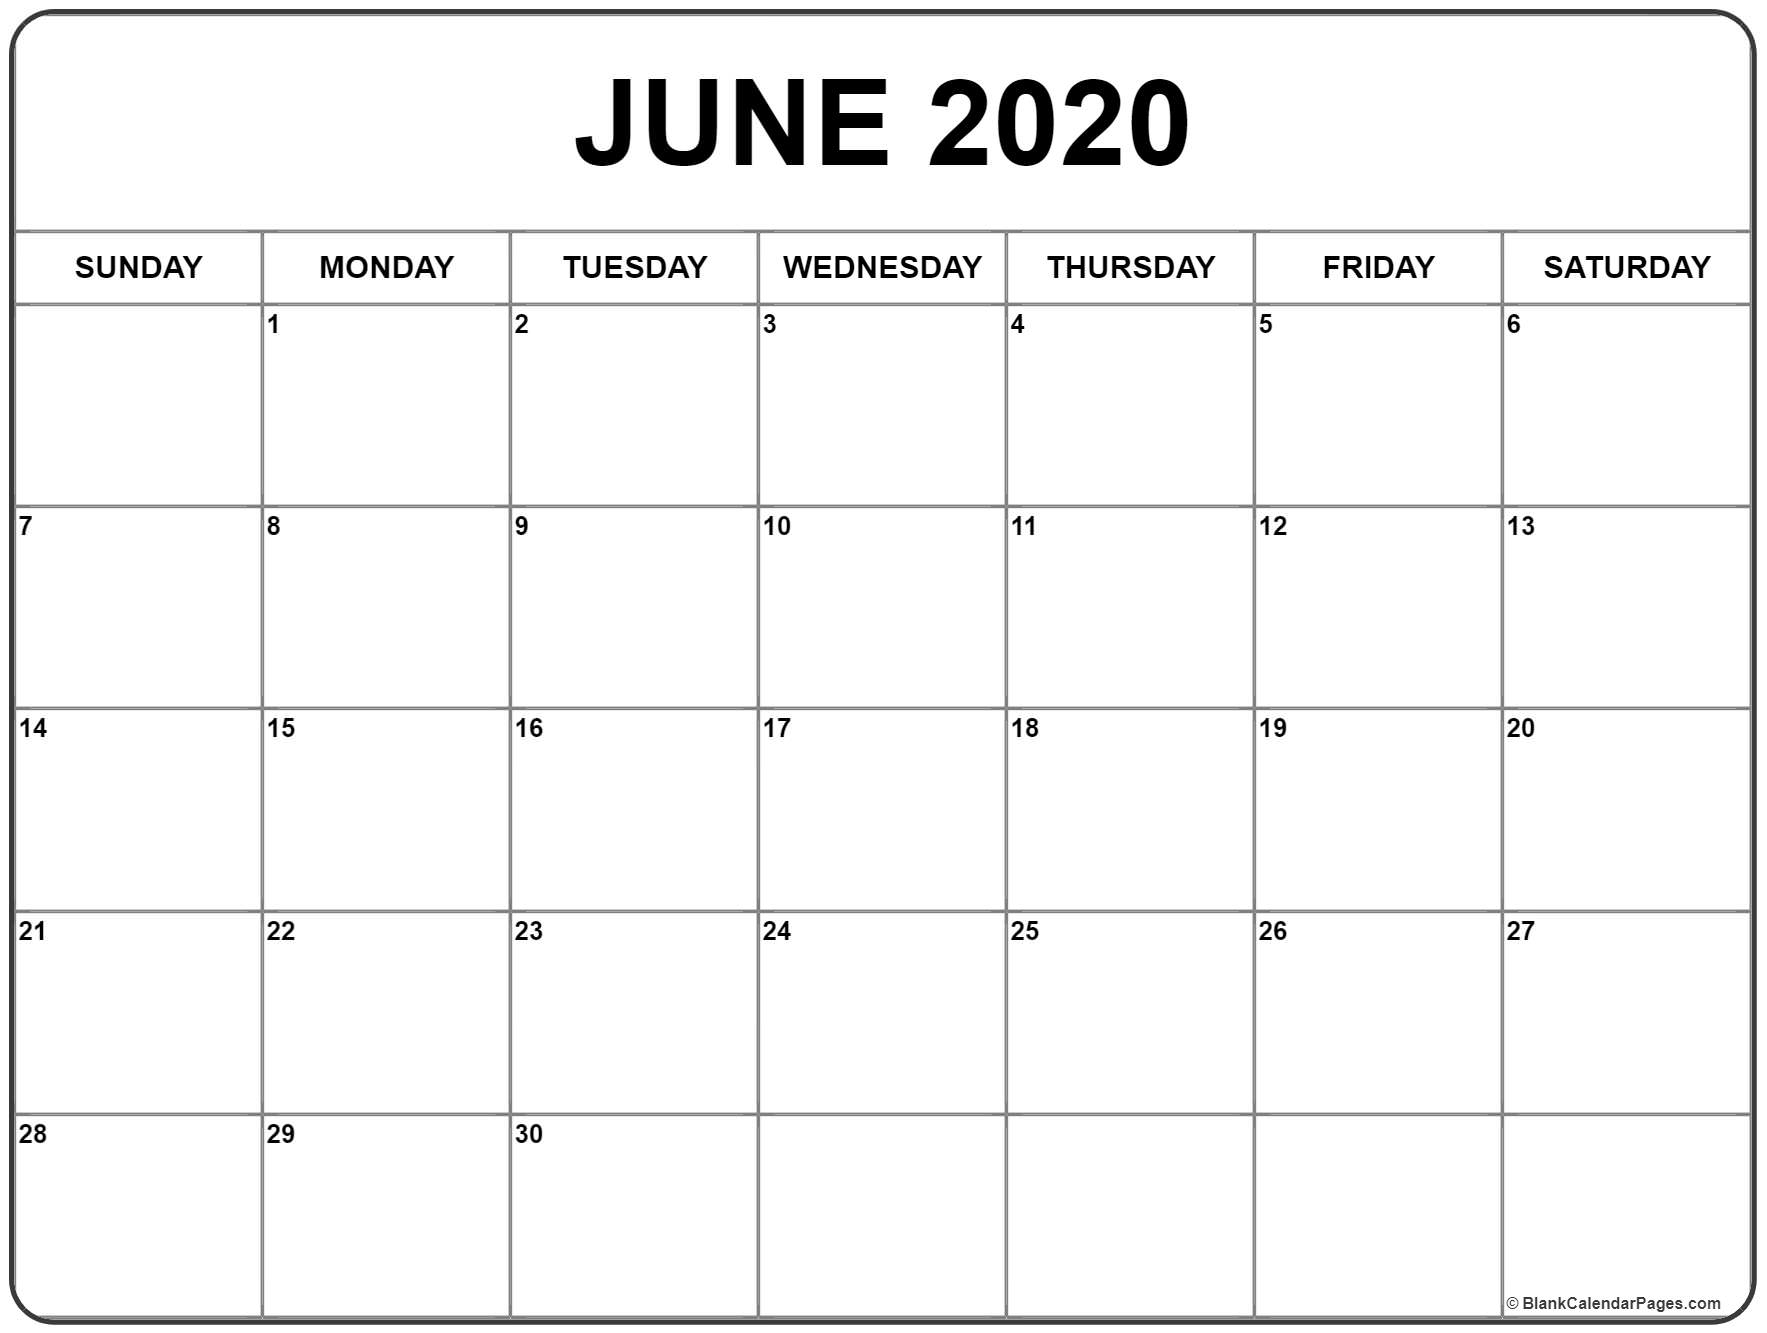 June 2020 Calendar | Free Printable Monthly Calendars intended for Free Printable Calendar June 2019 - June 2020